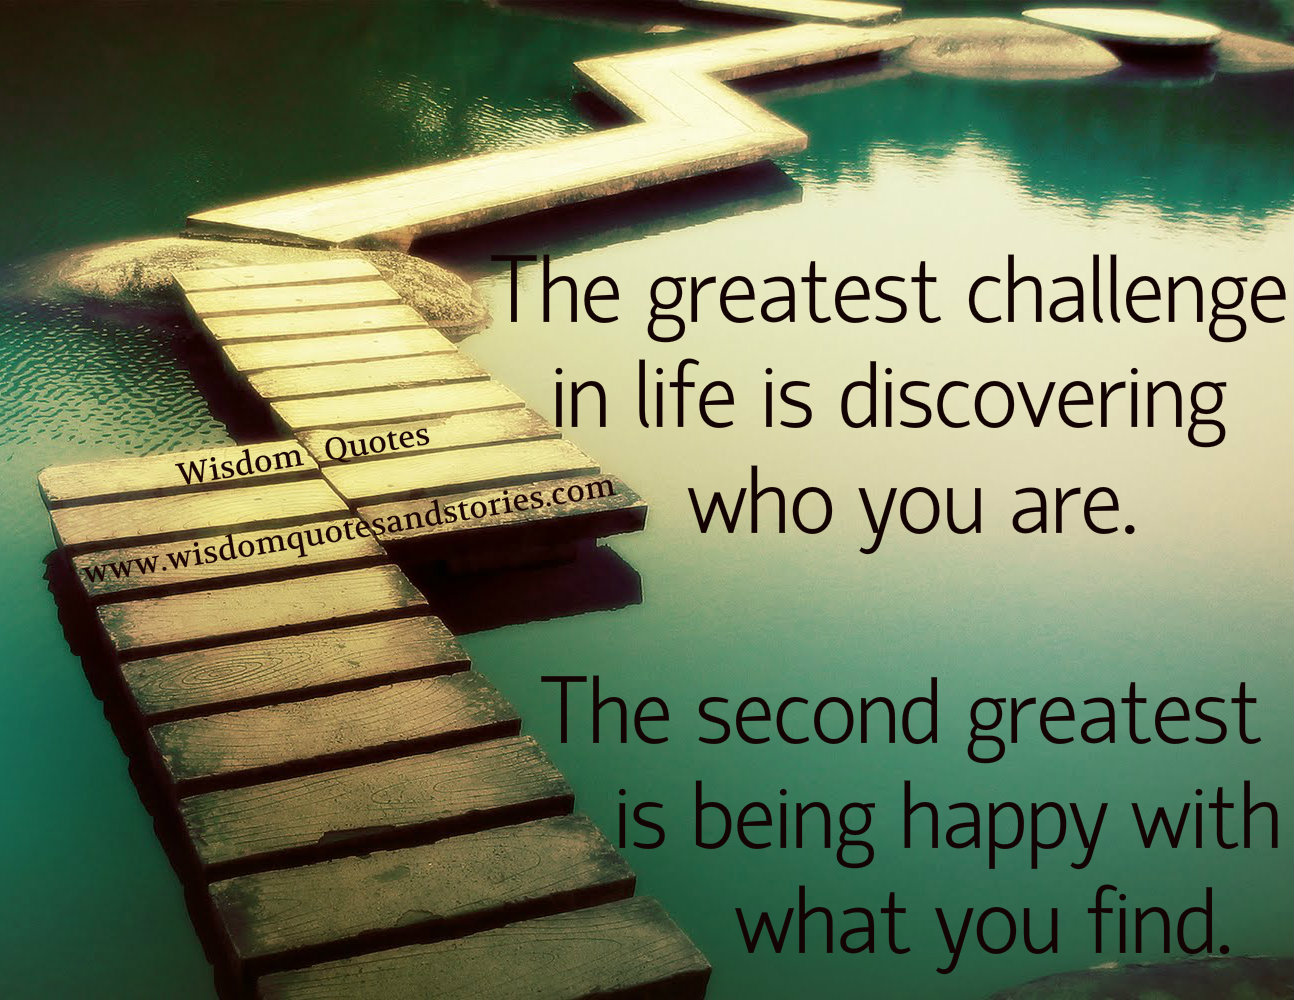 The greatest challenge in life is discovering who you are and being happy with what you find